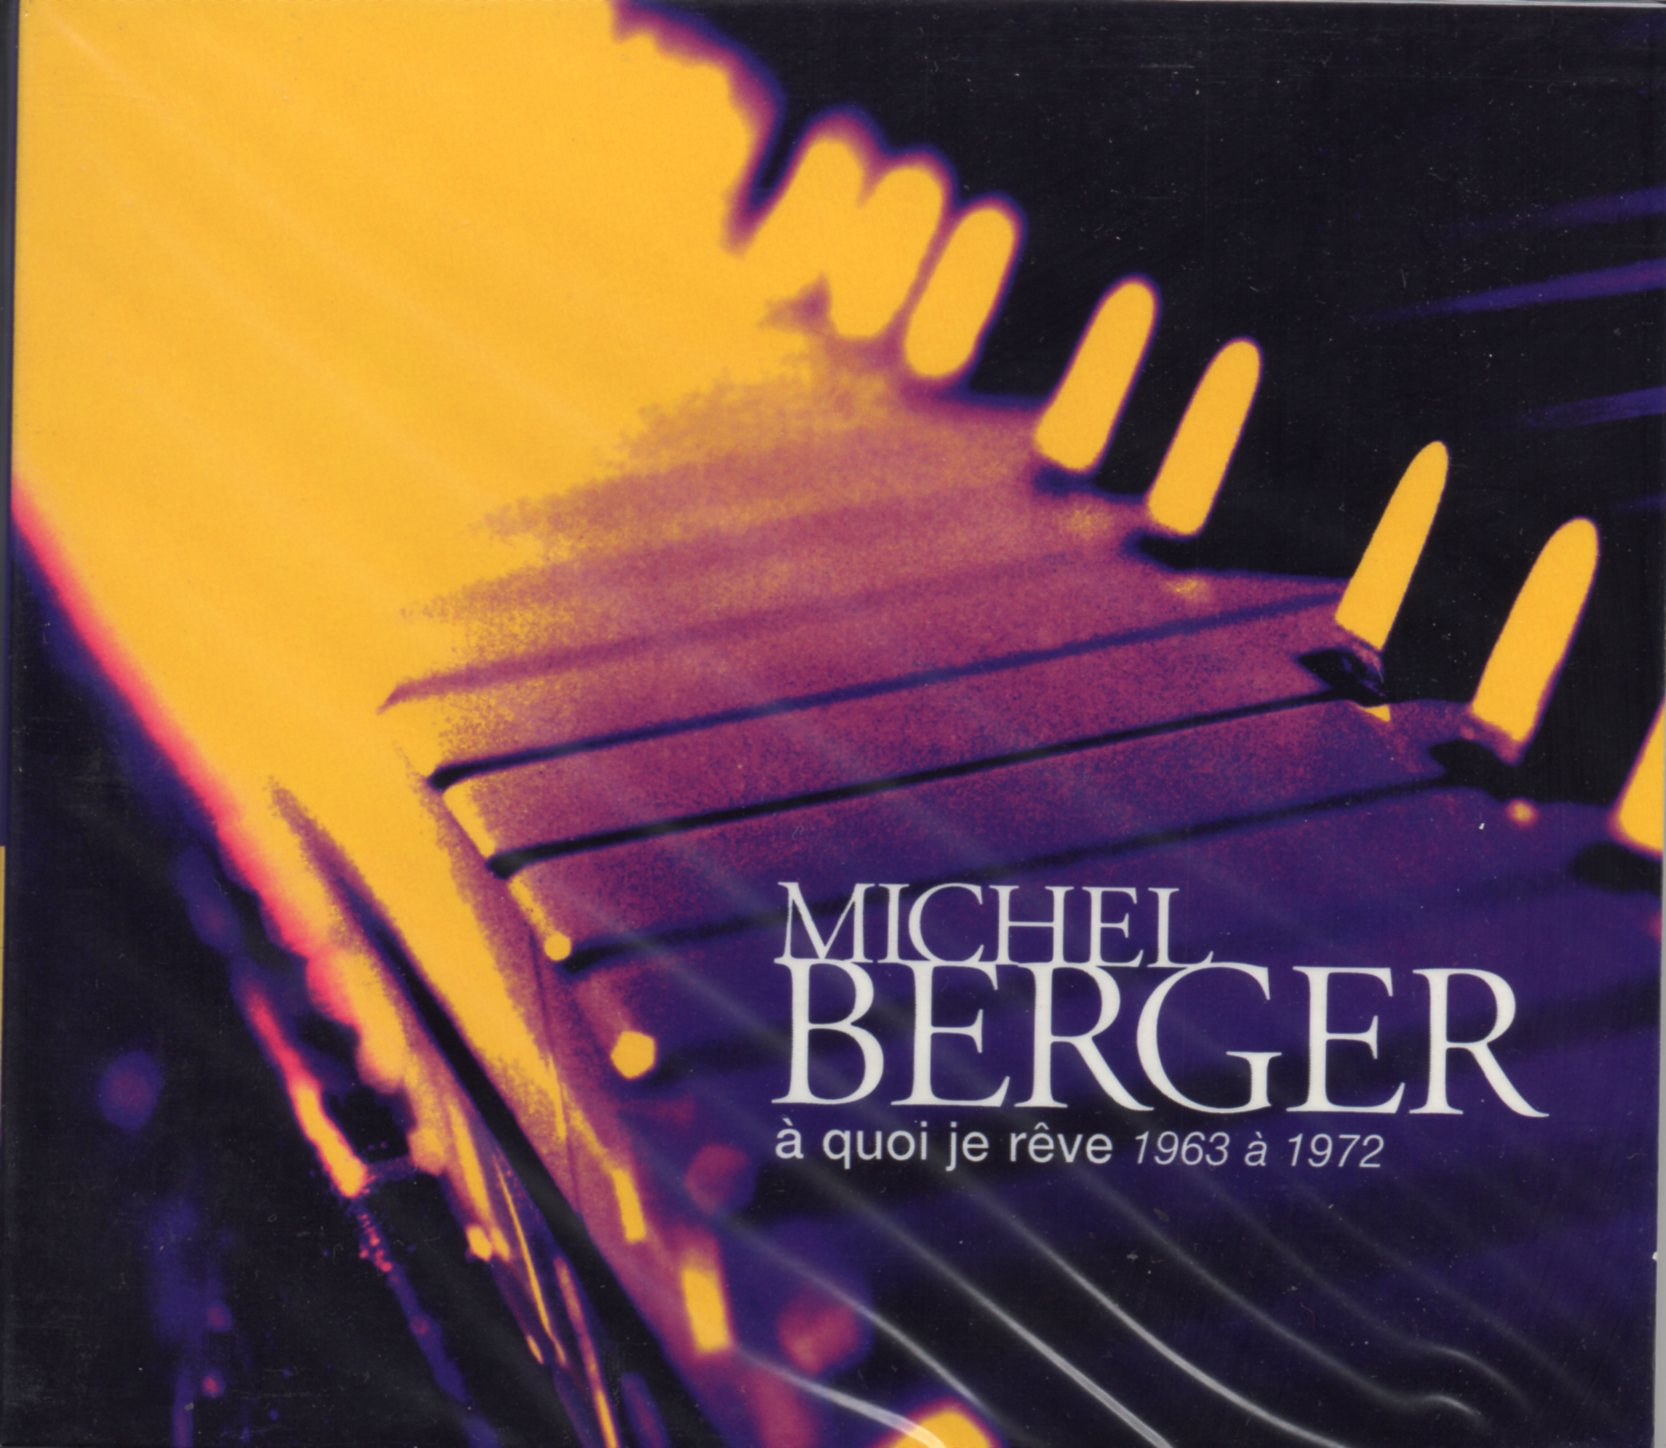 MICHEL BERGER - 1963 - 1972 - Puzzle - Words - Pathé Marconi - CD